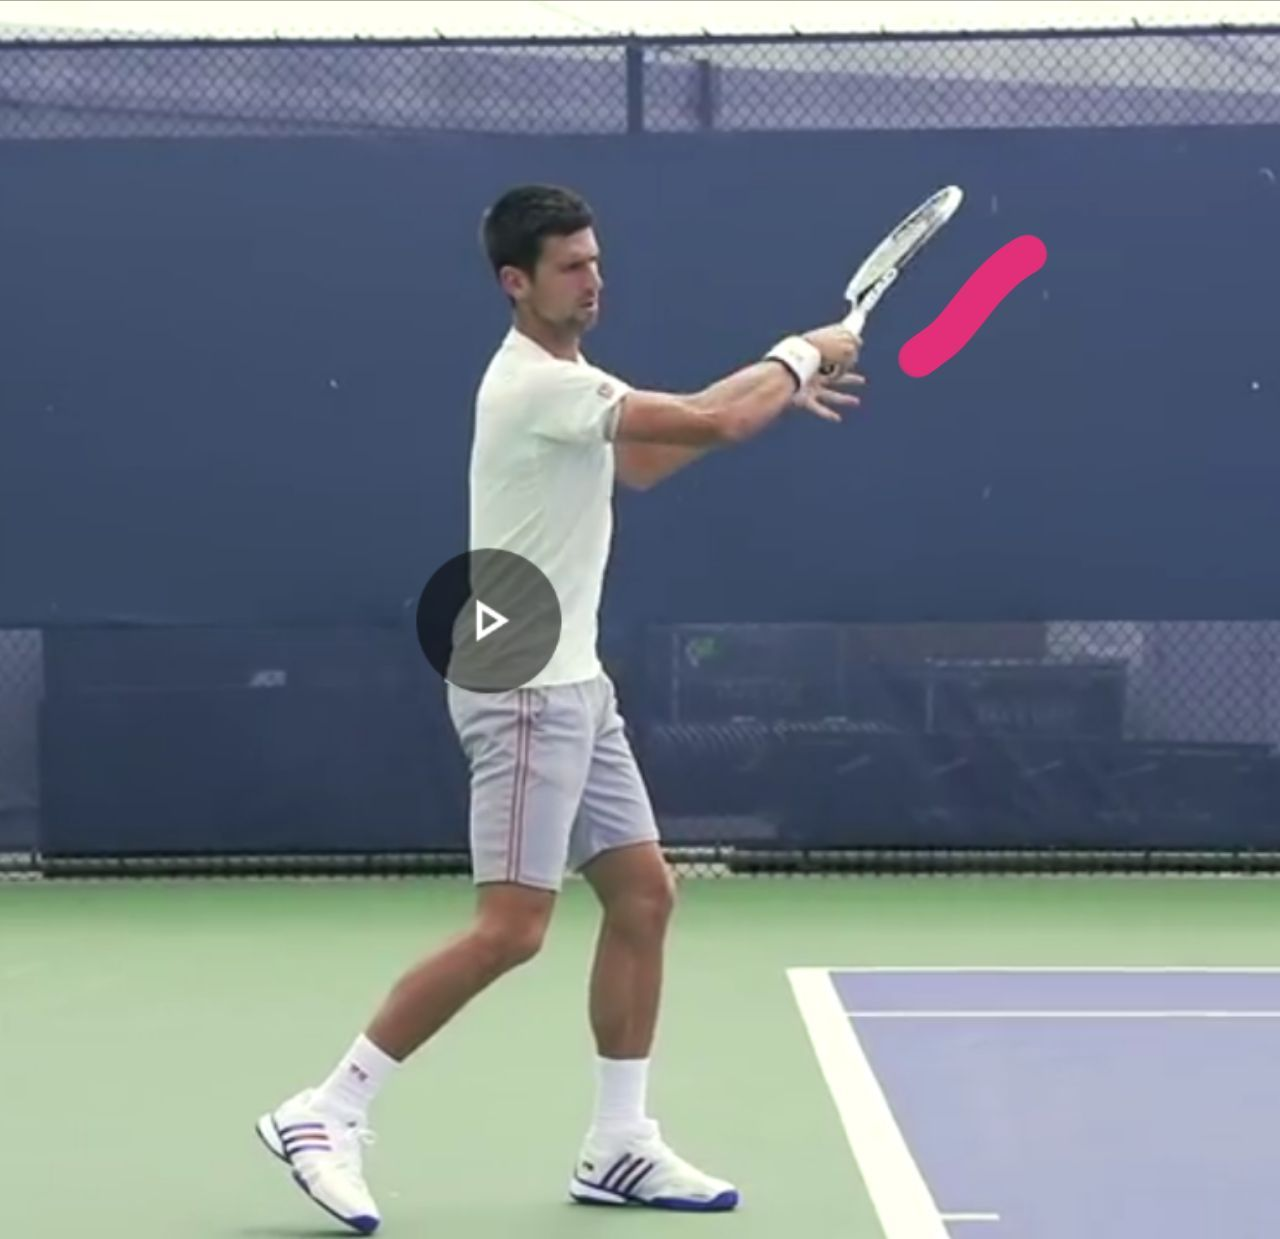 Stop pronating on forehand, it's all about ISR and Elbow